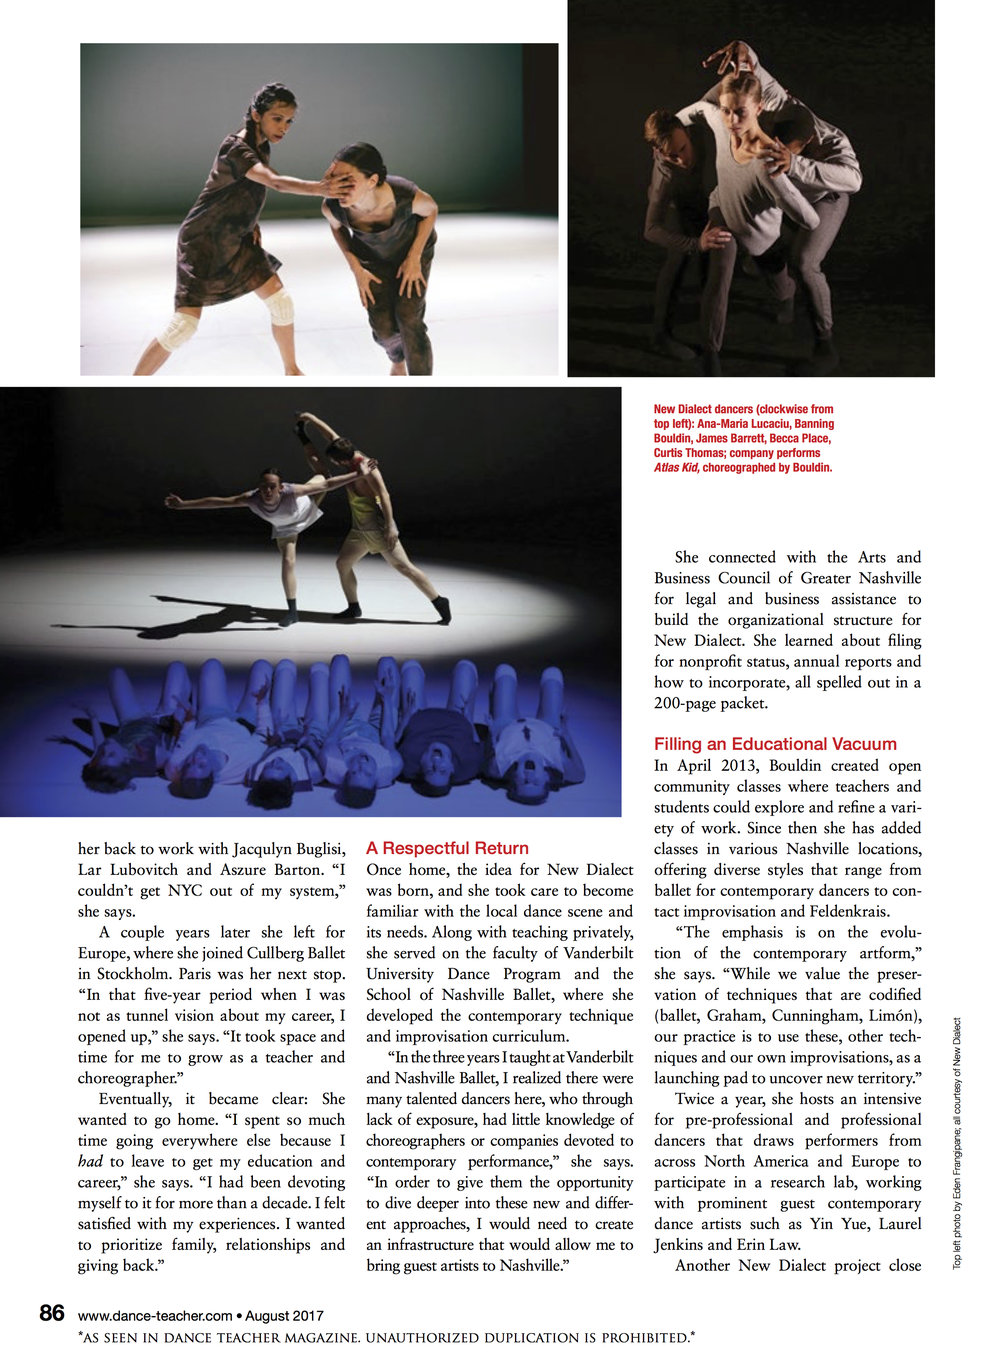 Dance Magazine Article 2017 2.jpg